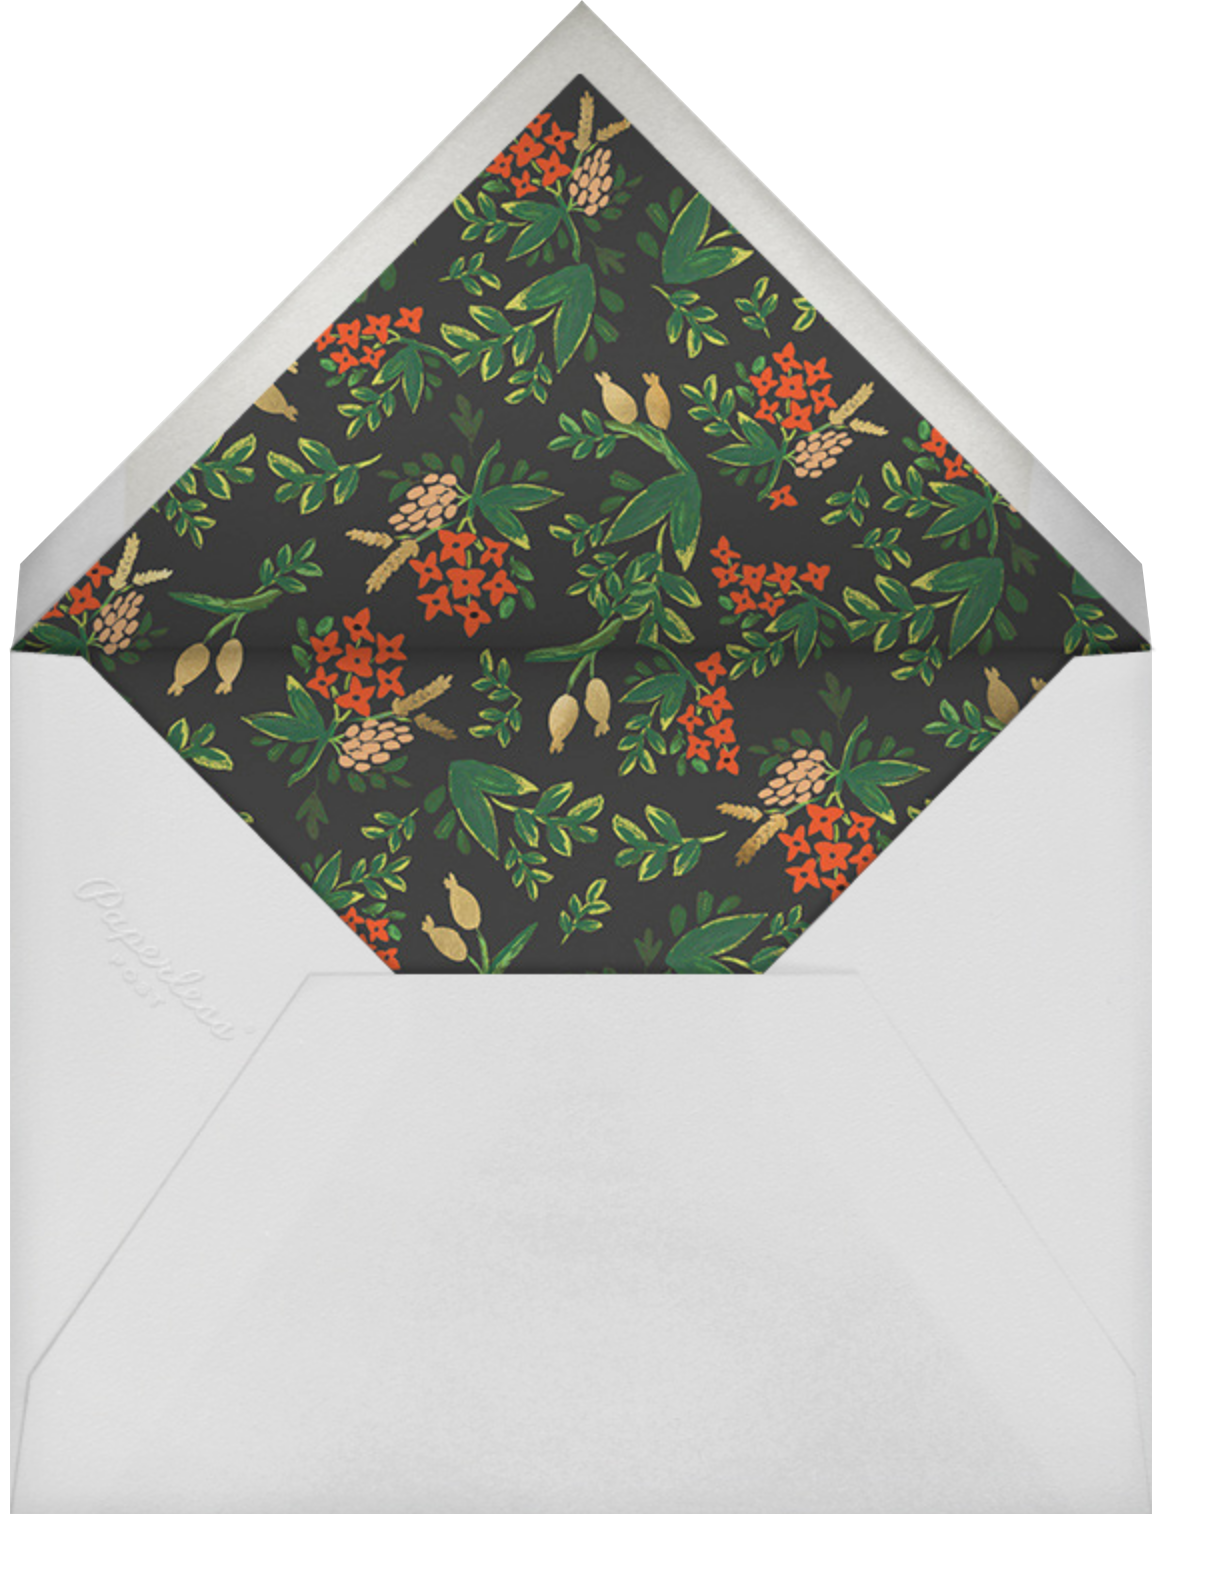 Poinsettia Garland - Rifle Paper Co. - Holiday cards - envelope back